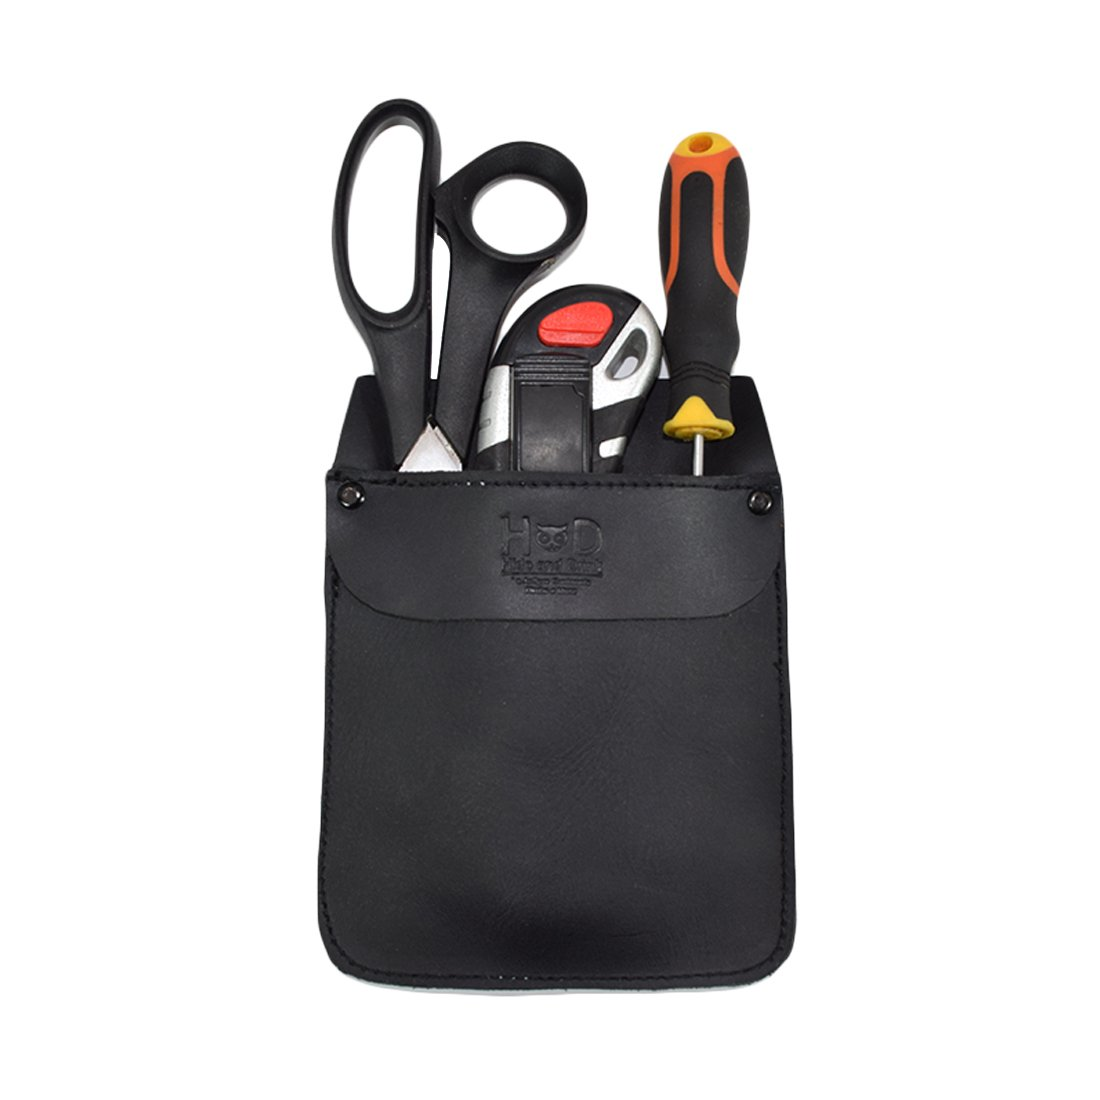 Durable Leather Work Pocket Organizer for Tools/Pens, Office & Work Essentials Handmade by Hide & Drink :: Charcoal Black by Hide & Drink